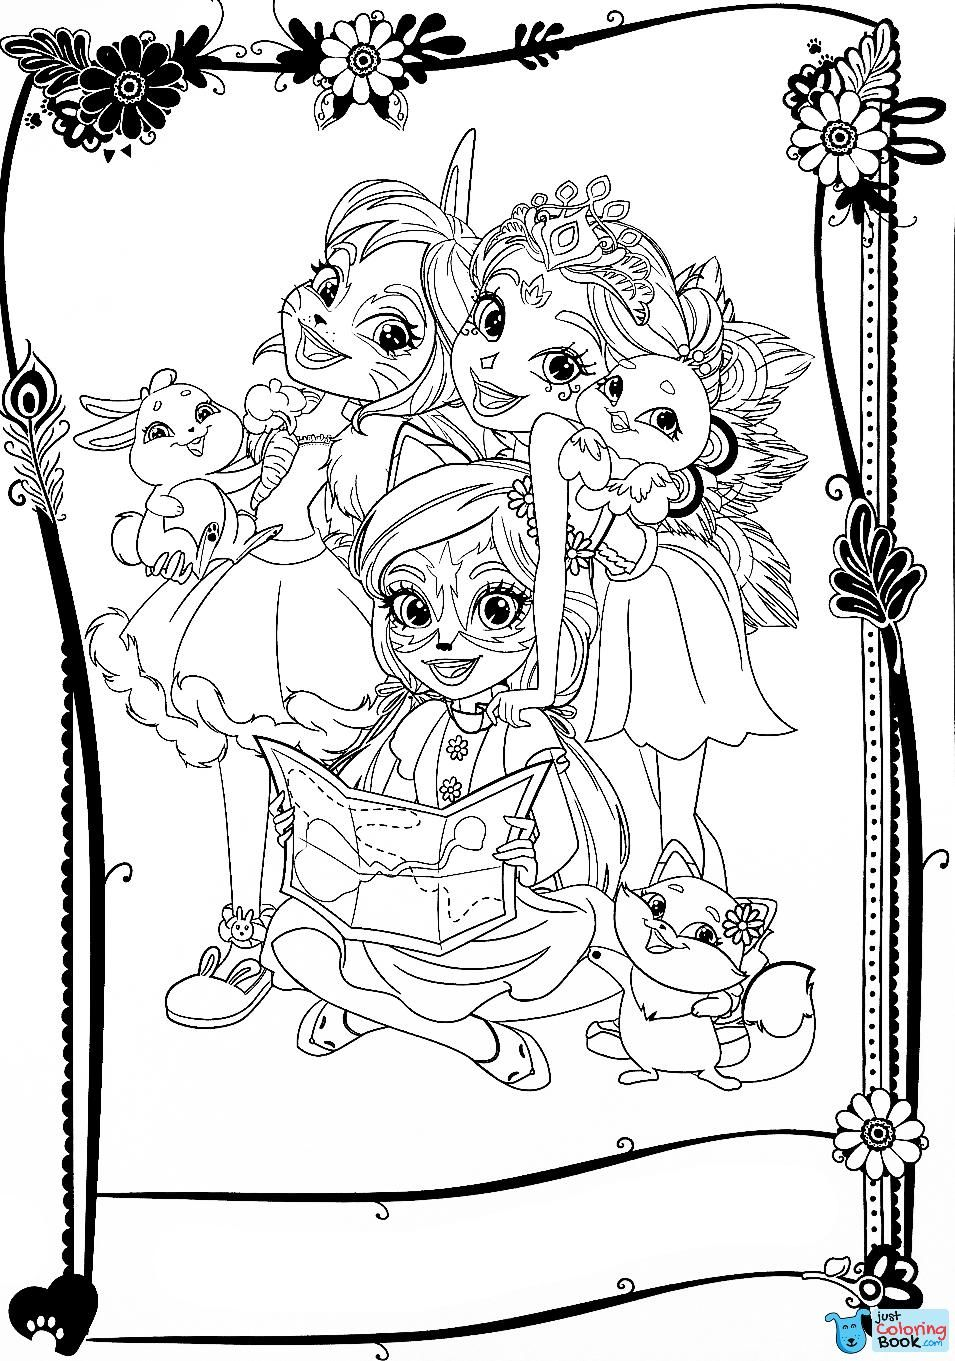 Pin On All Cartoon Coloring Pages